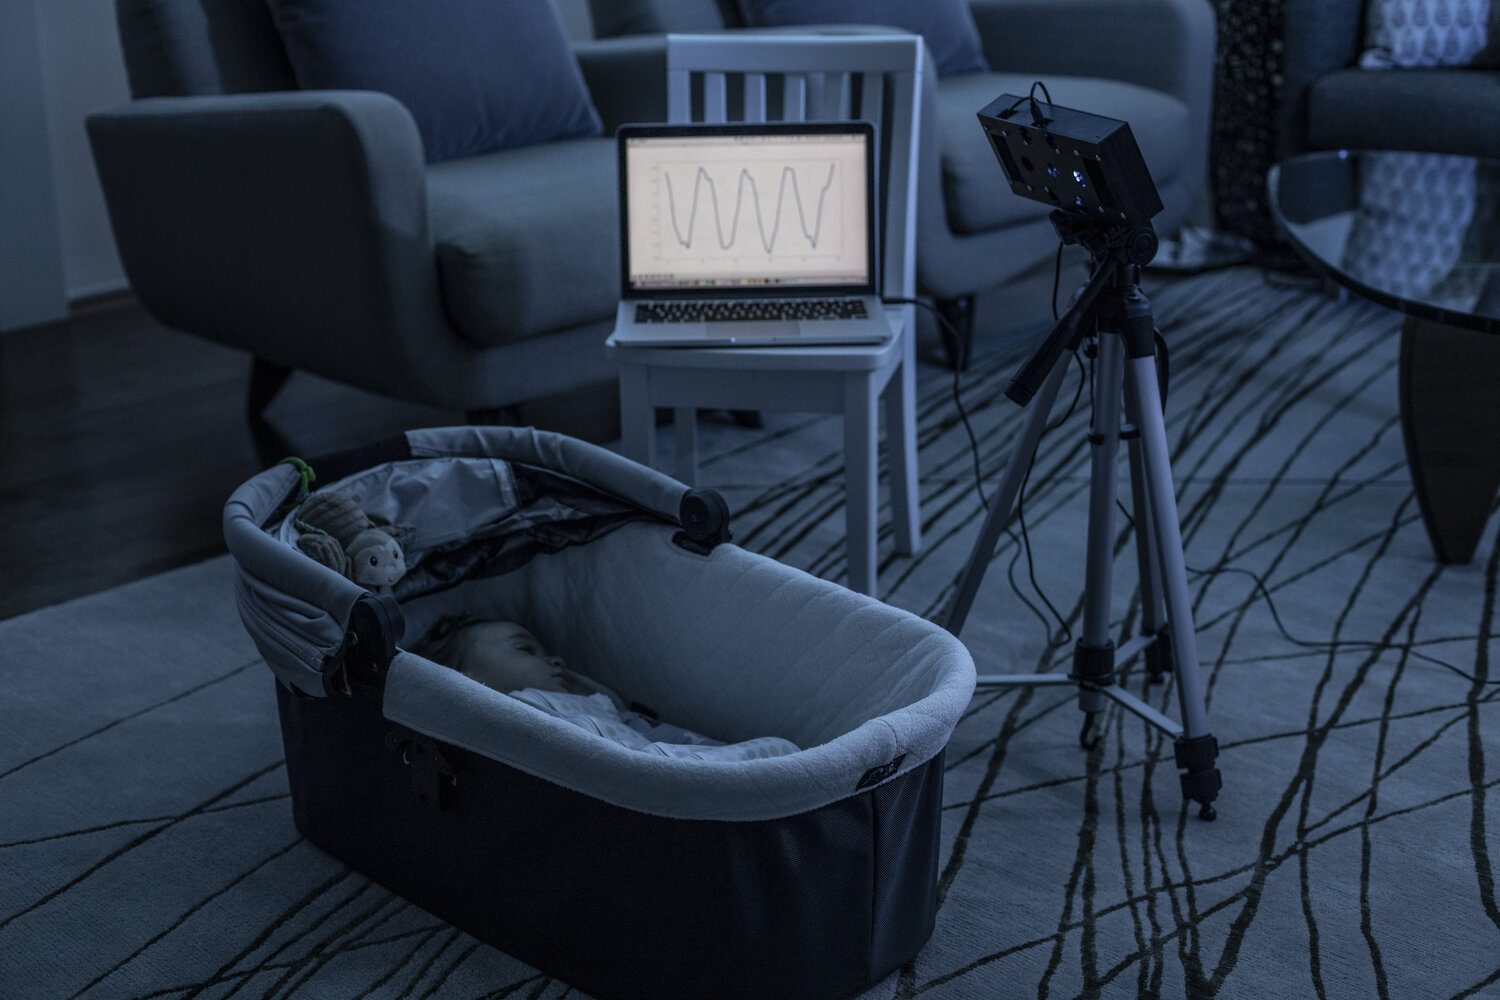 Smart speaker system uses white noise to monitor infants' breathing thumbnail